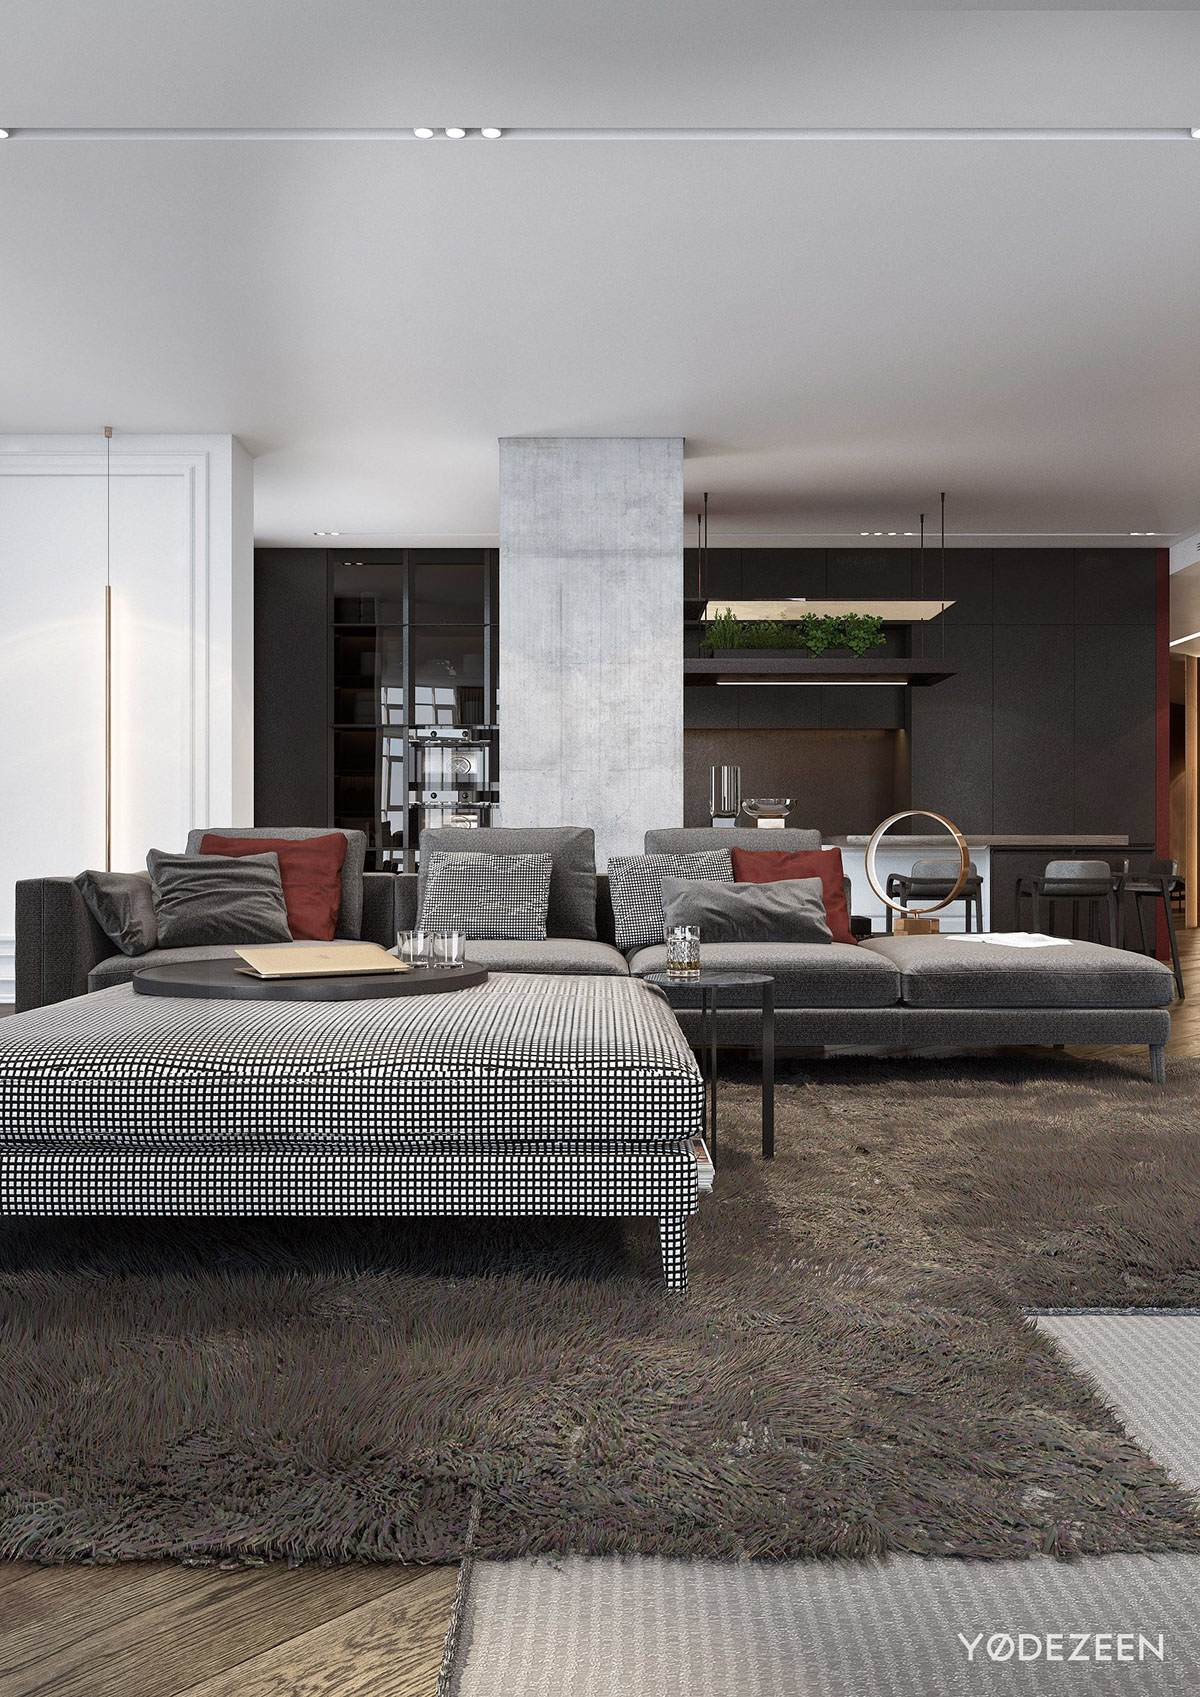 Rich Patterns In Modern Red And Greyscale Home - A modern apartment with classical features